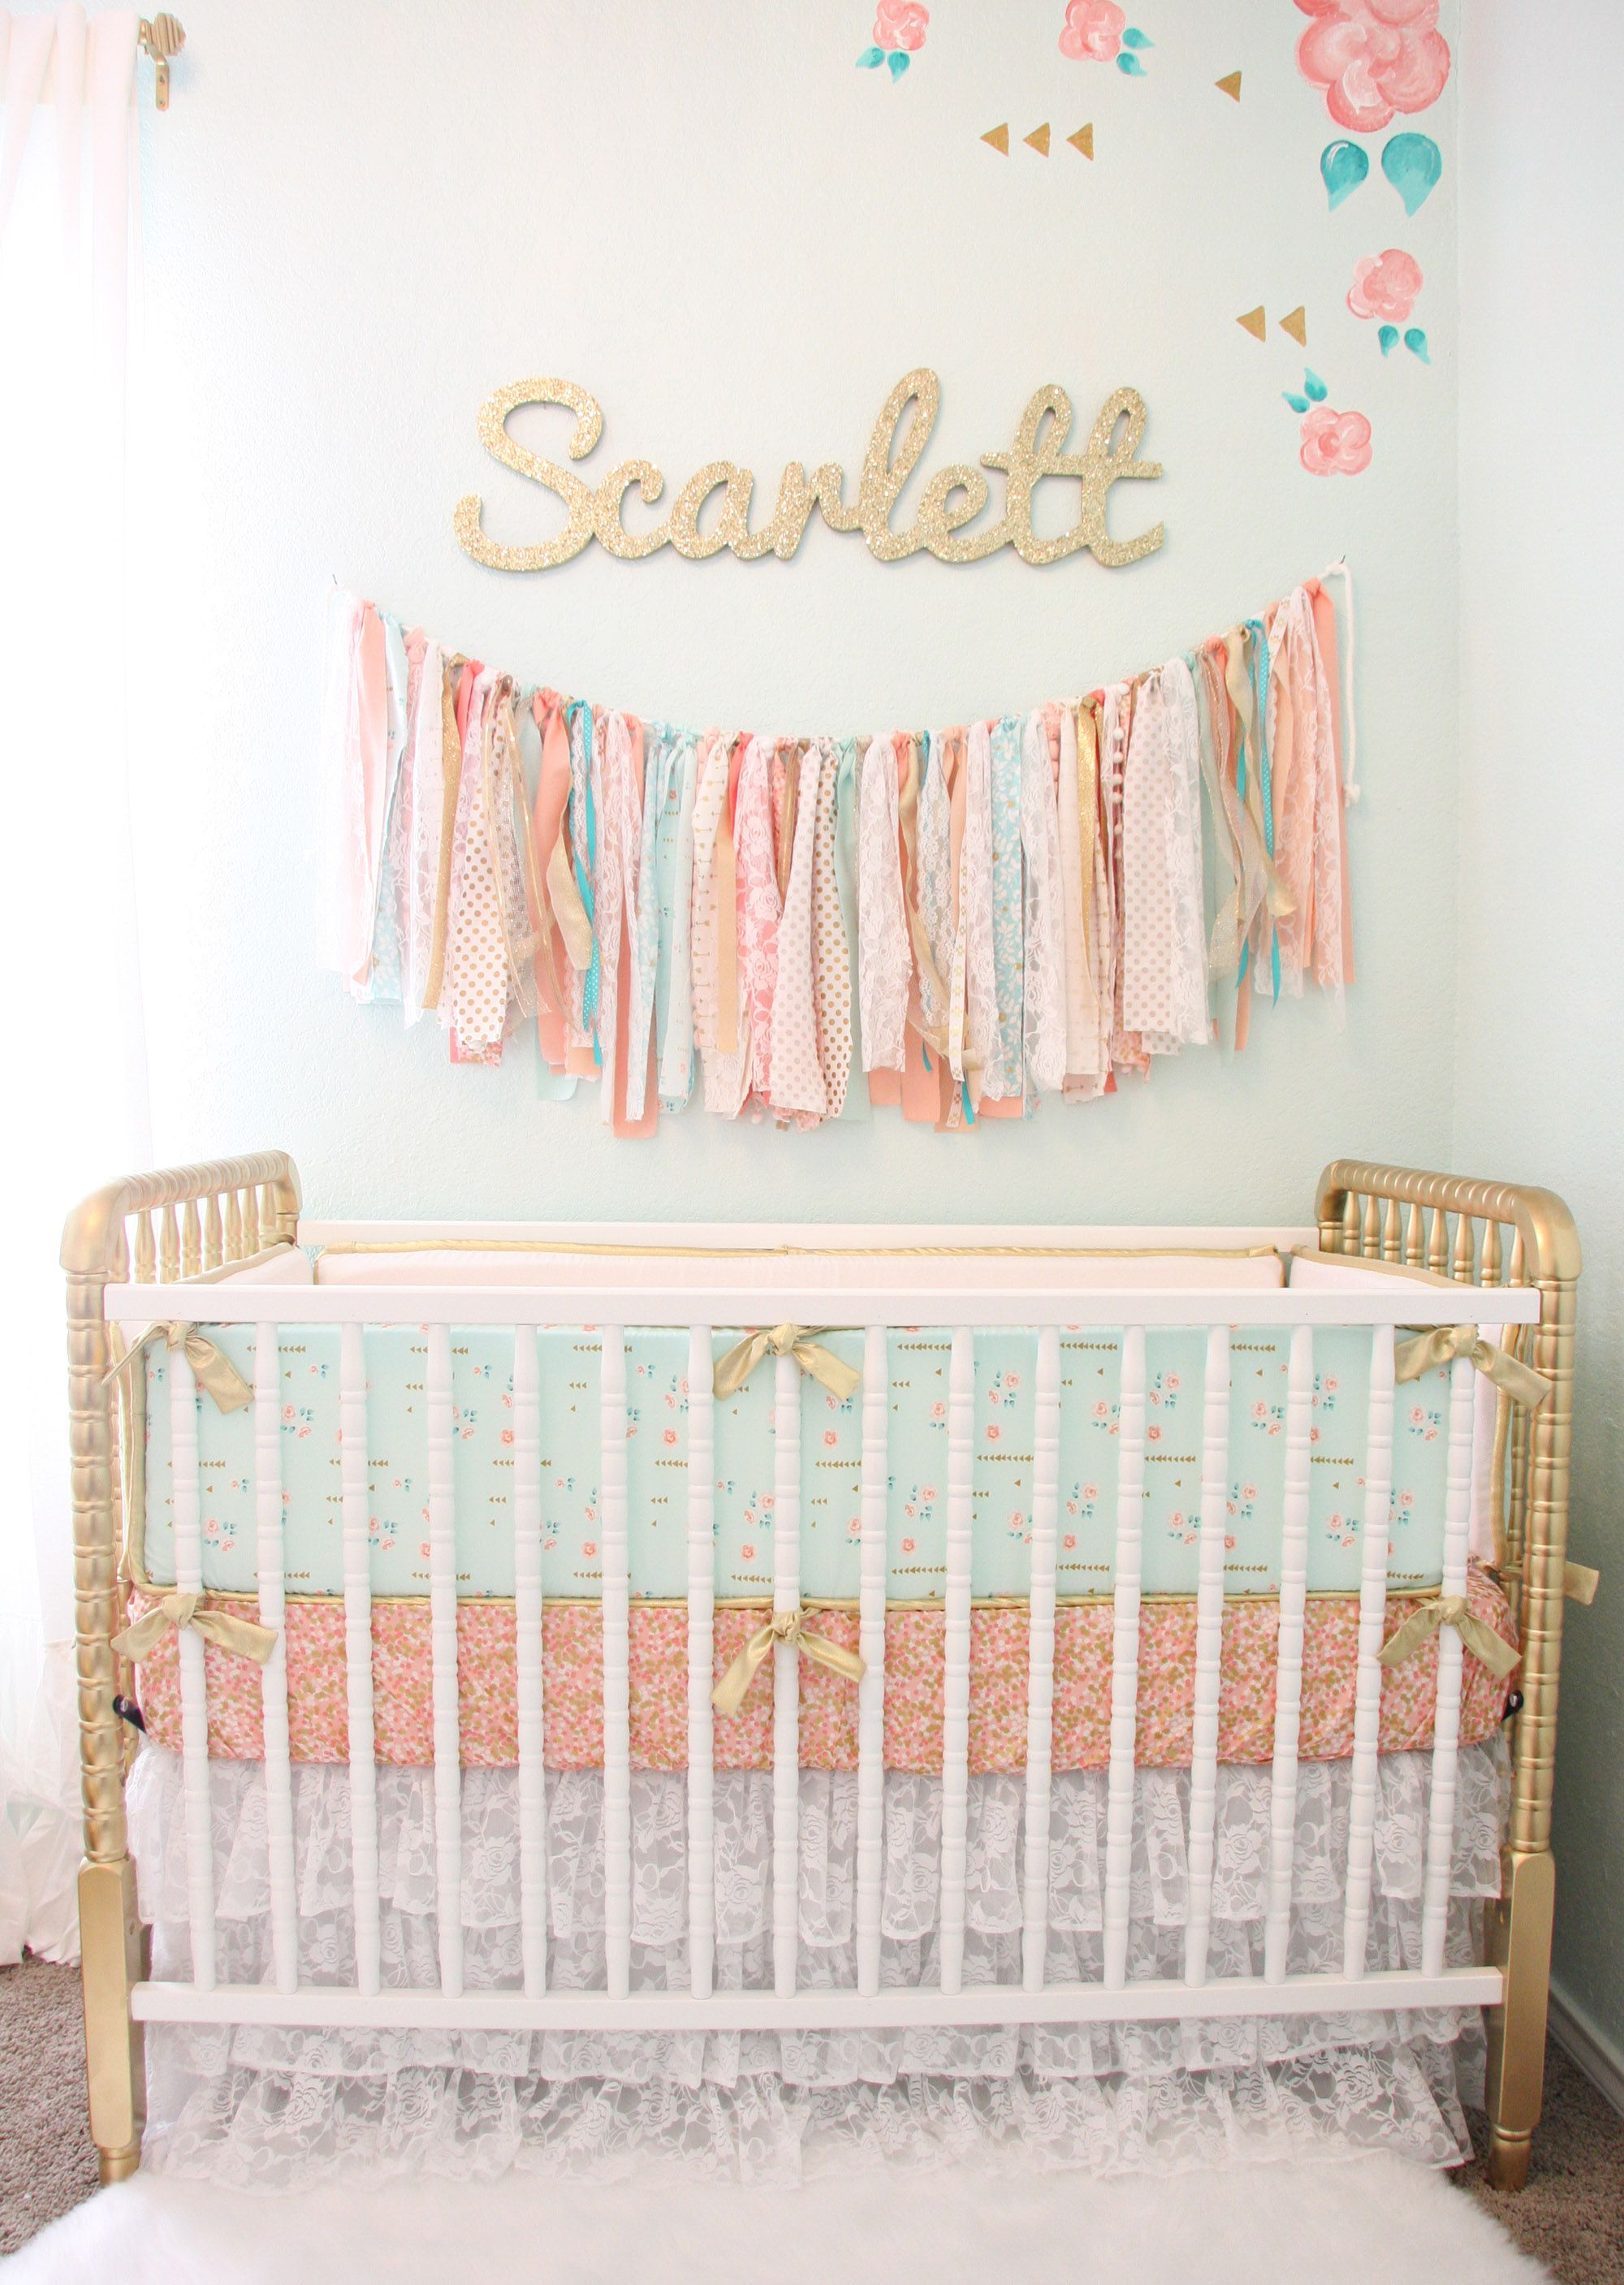 Gold crib for sale - Did Someone Say Rose Gold Crib We Are There Loving The Incy_interiors Crib Amazing Styling Pink Nursery Pinterest The End I Love And Over The